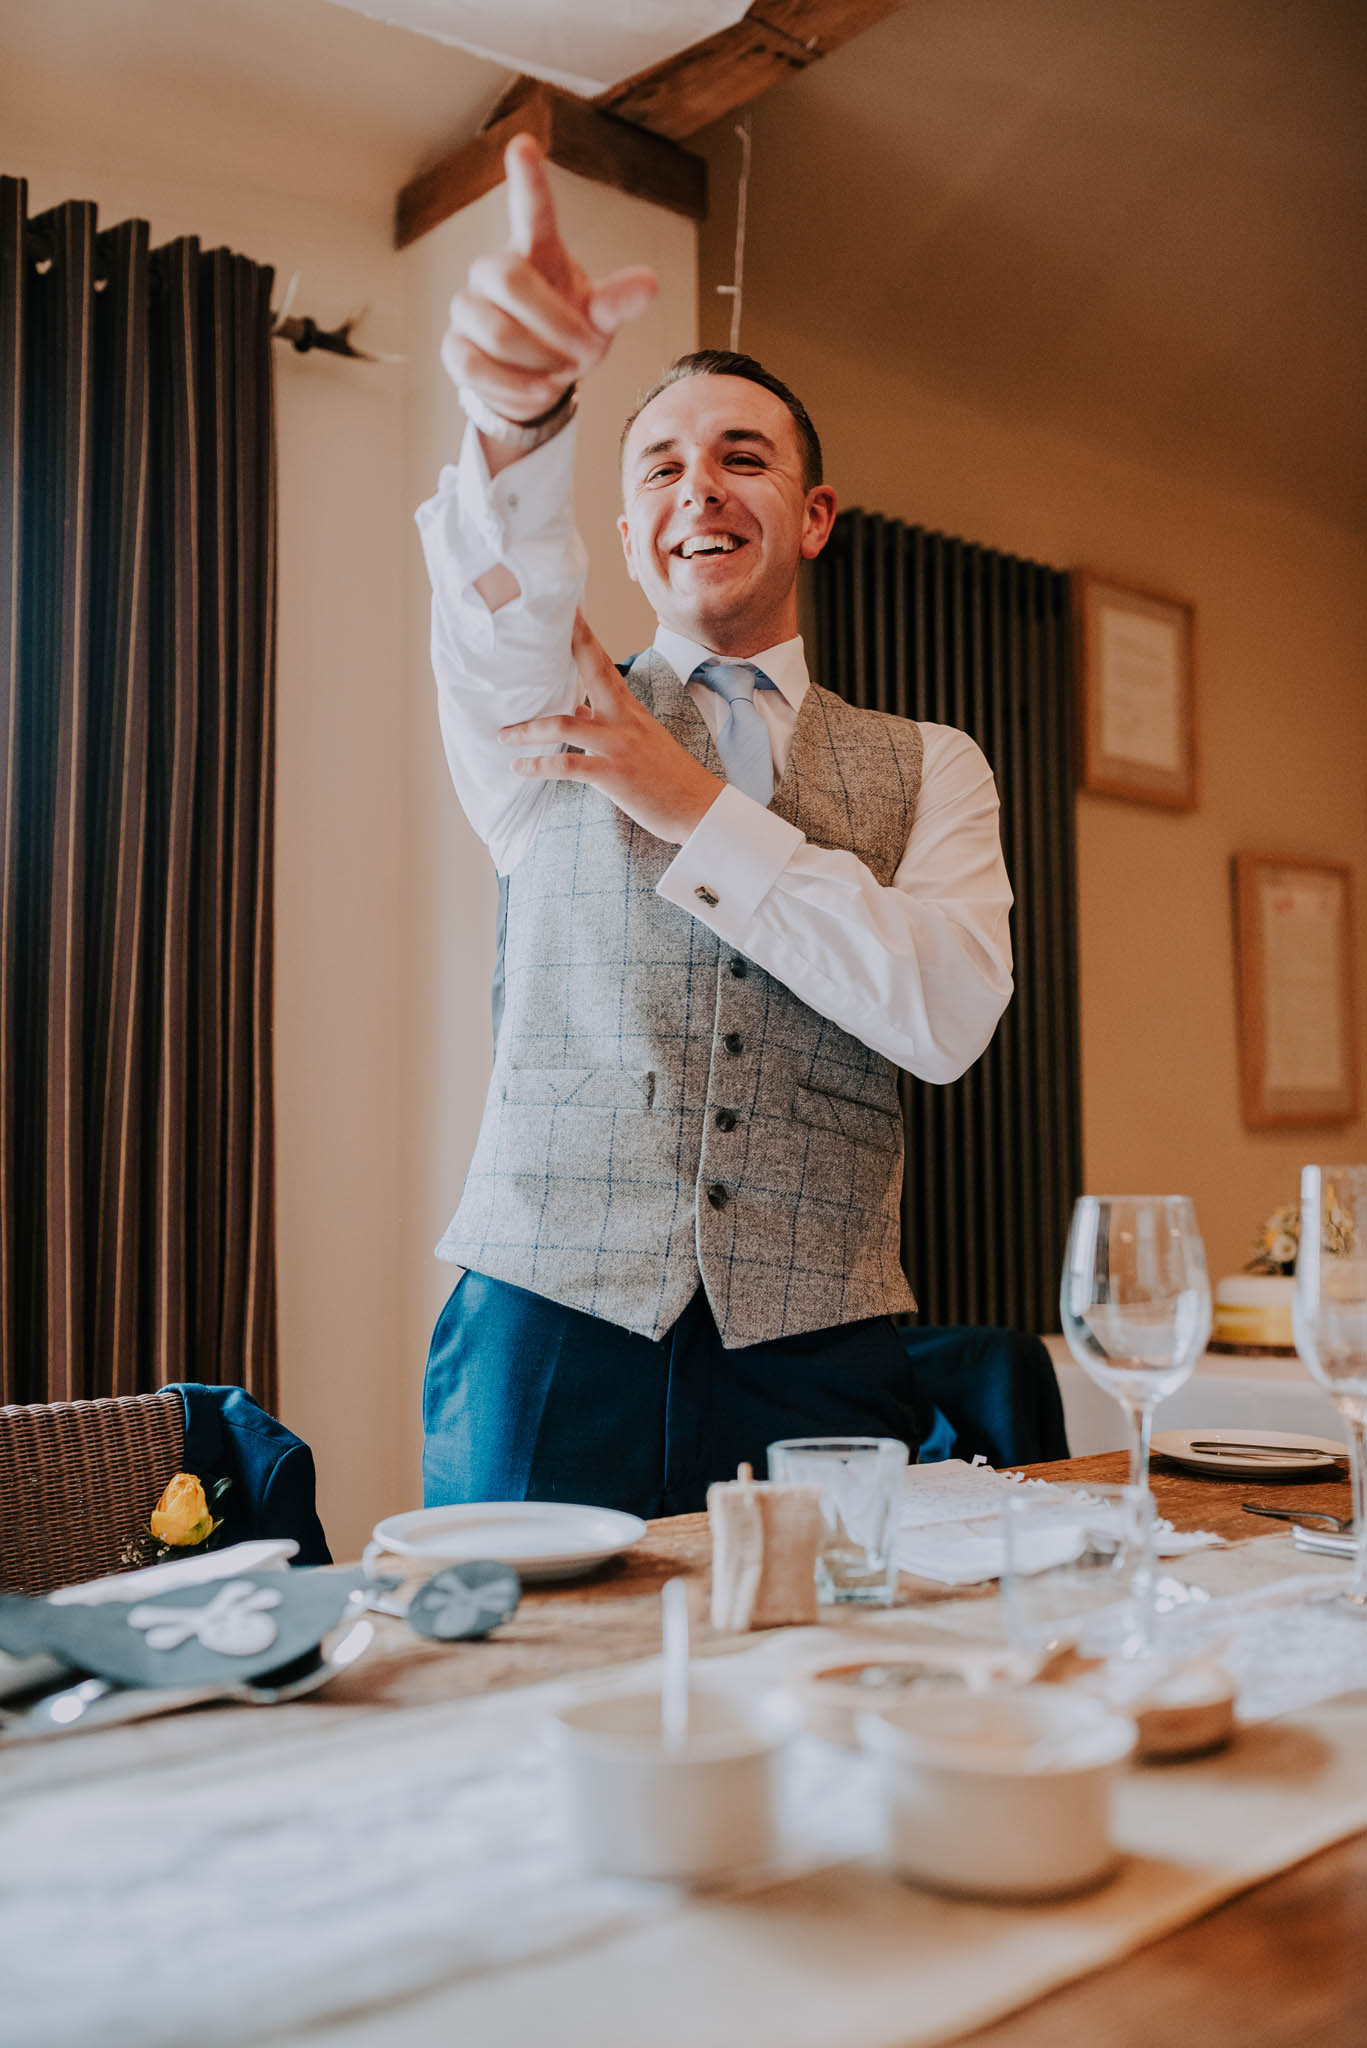 best-man-speeches-wedding-blog-scott-stockwell-photography-end-2017.jpg